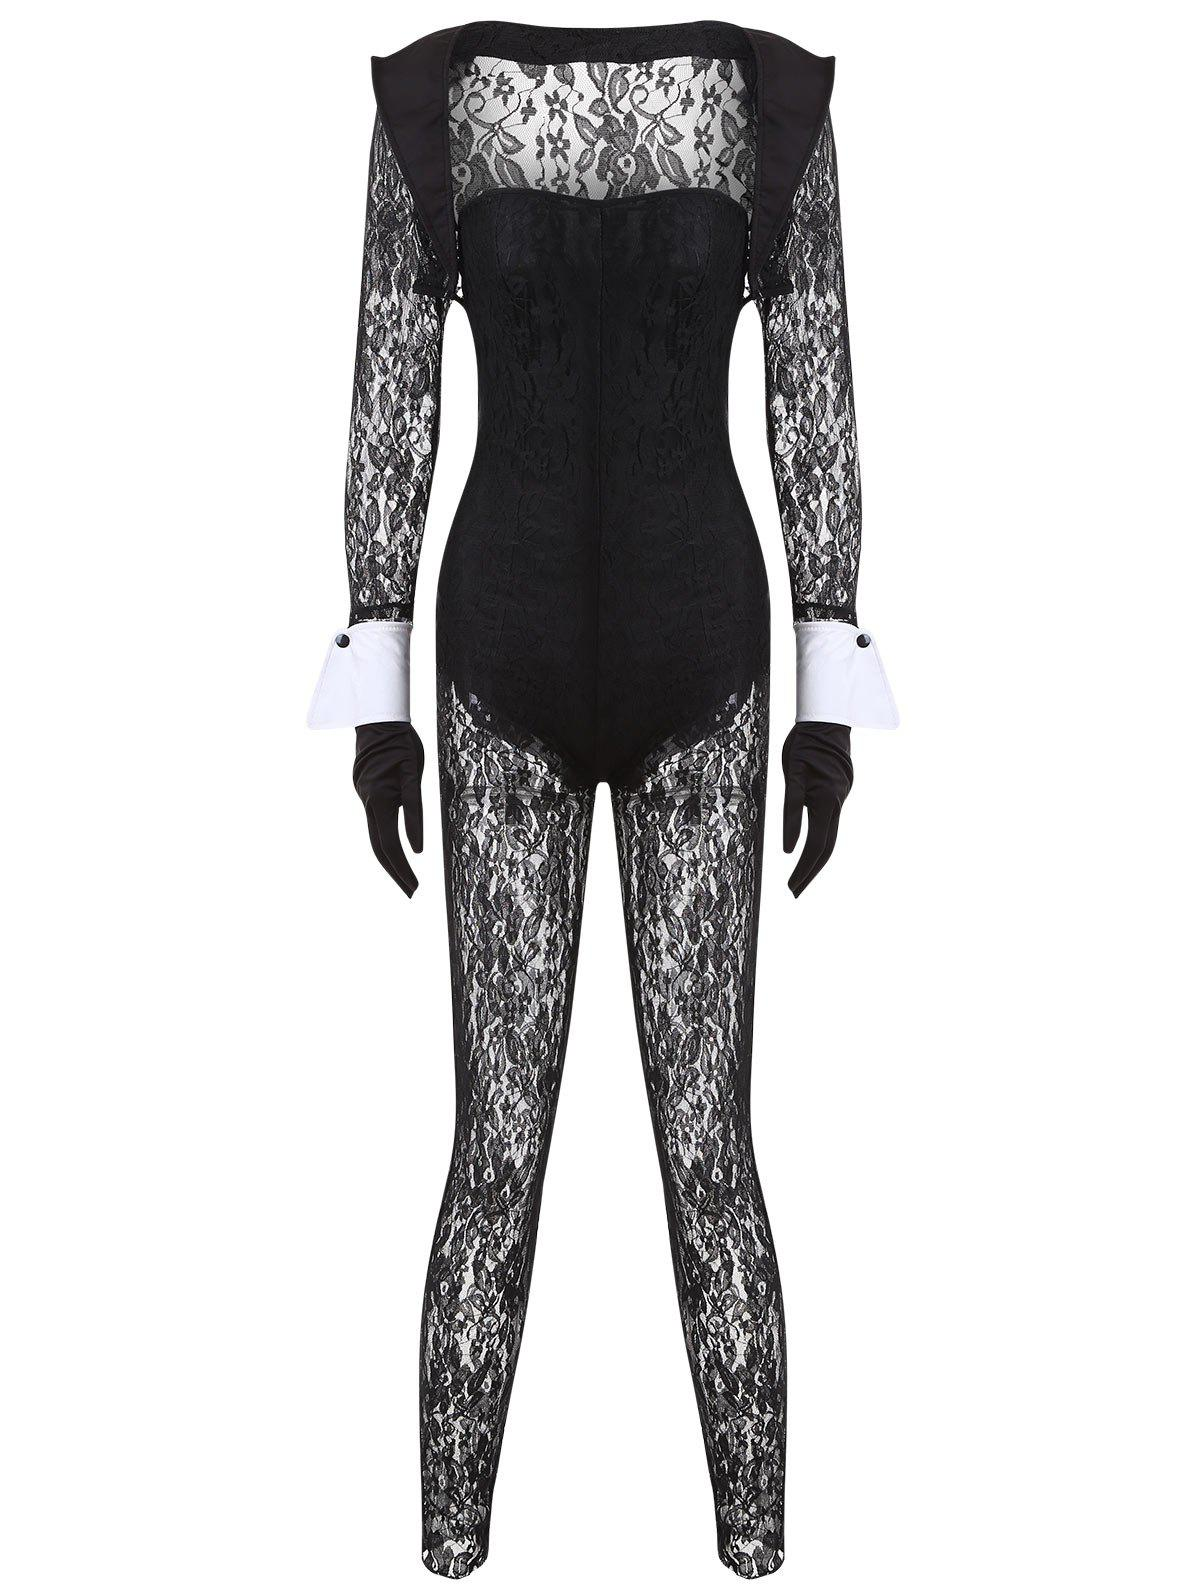 Lace See Through Bunny Costume Set - BLACK ONE SIZE